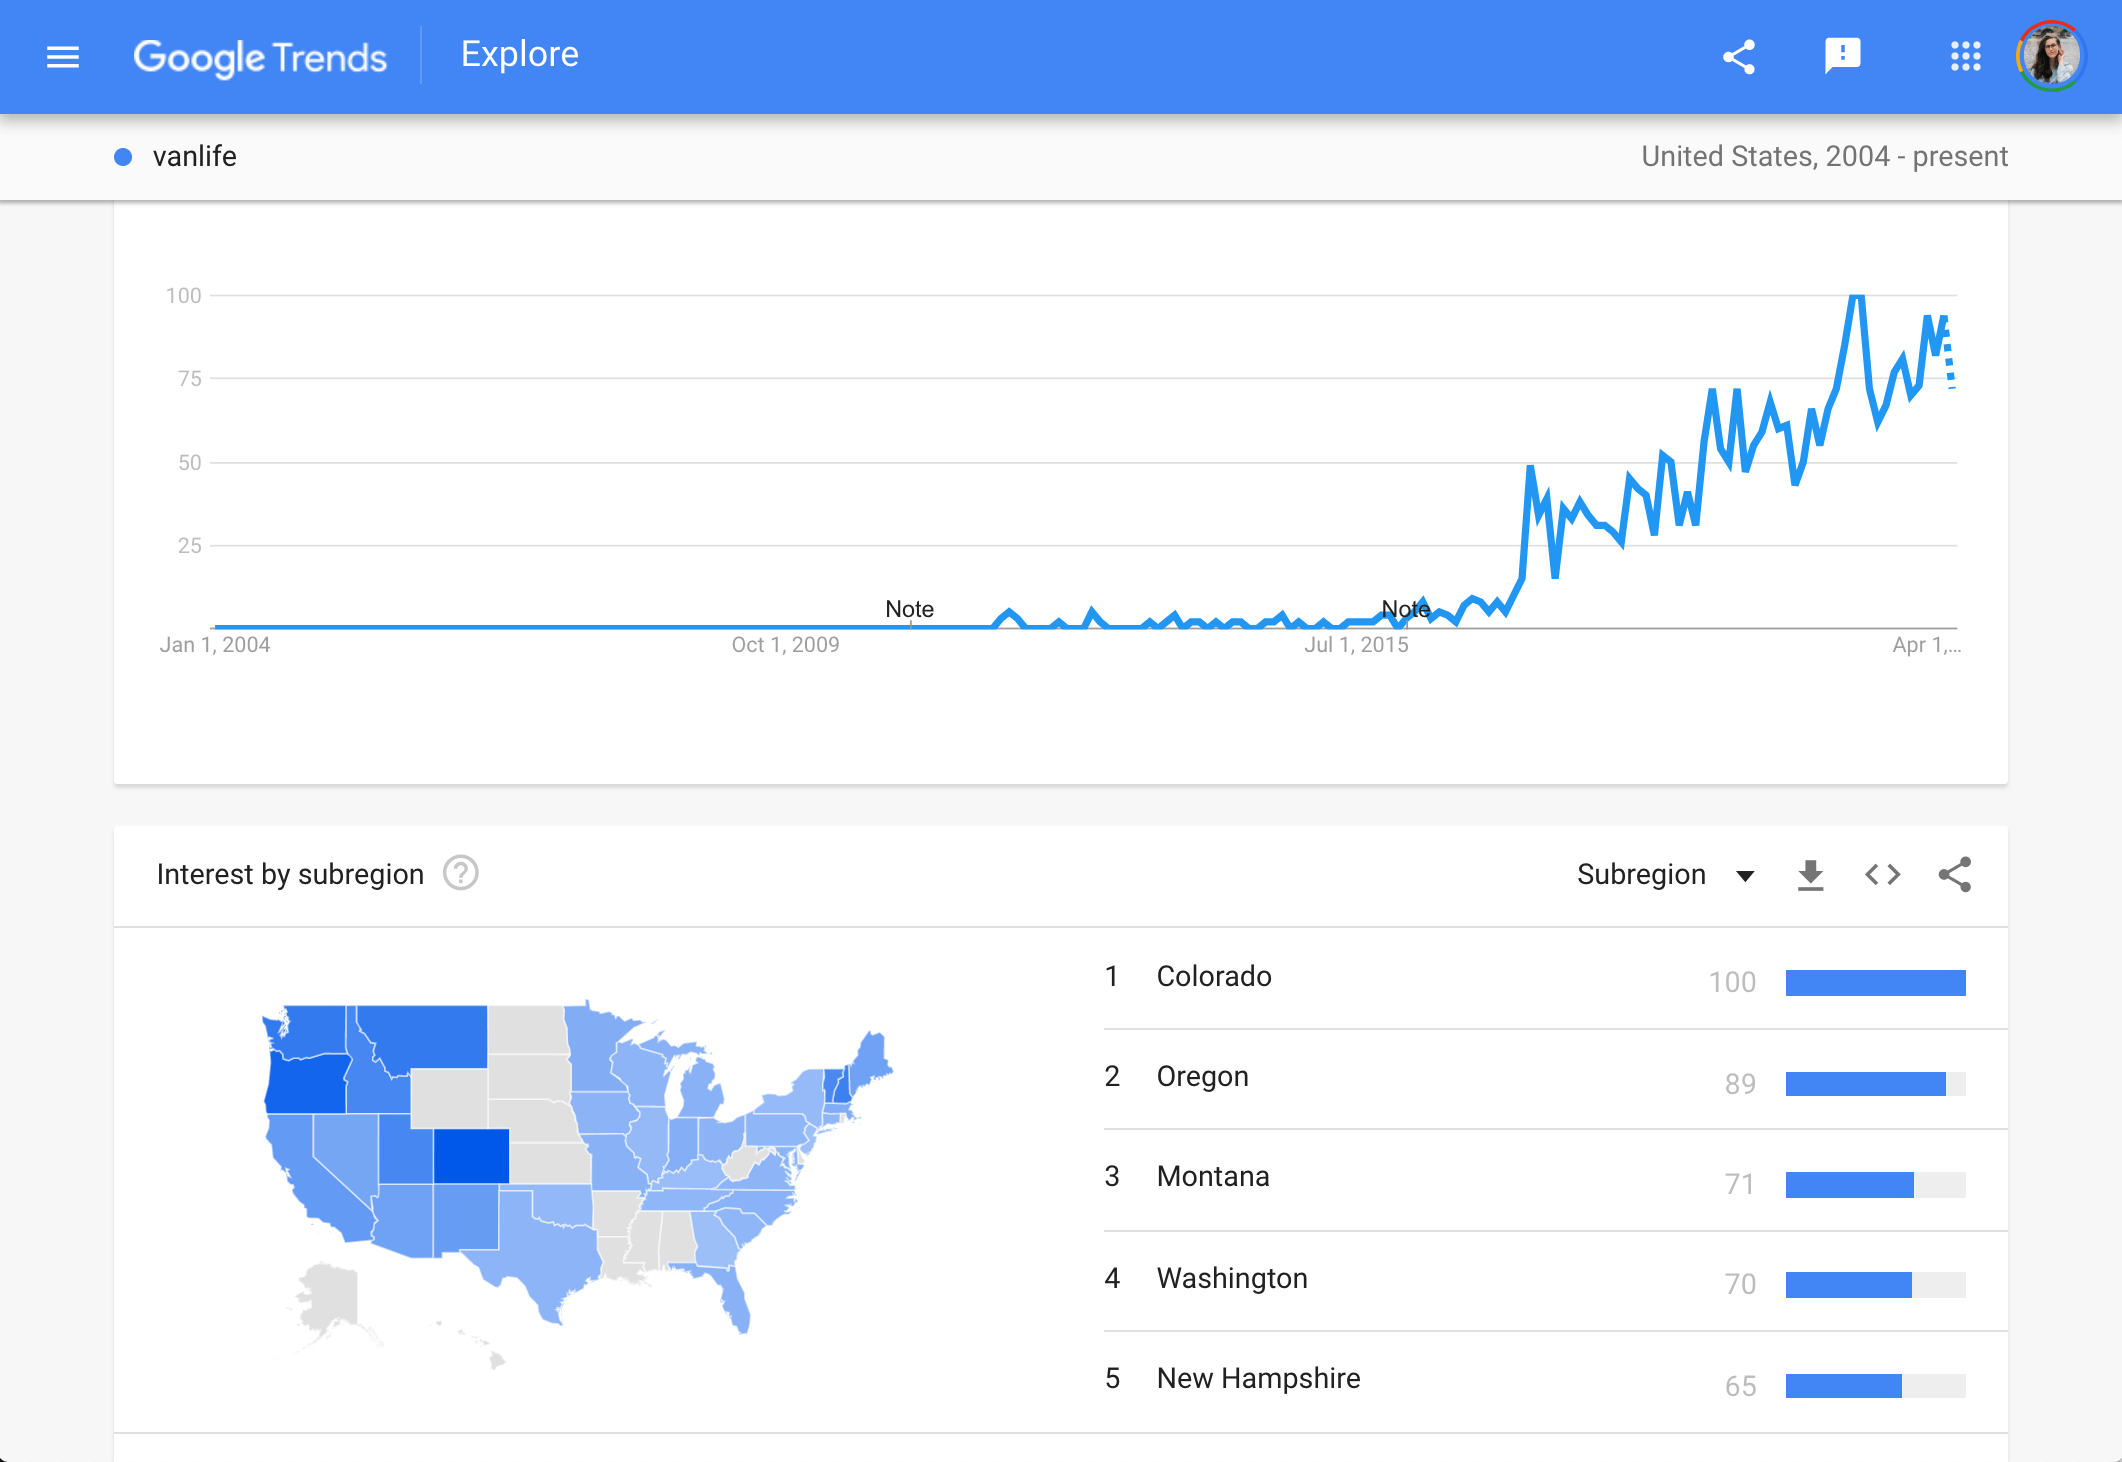 Google Trends for Niche Research